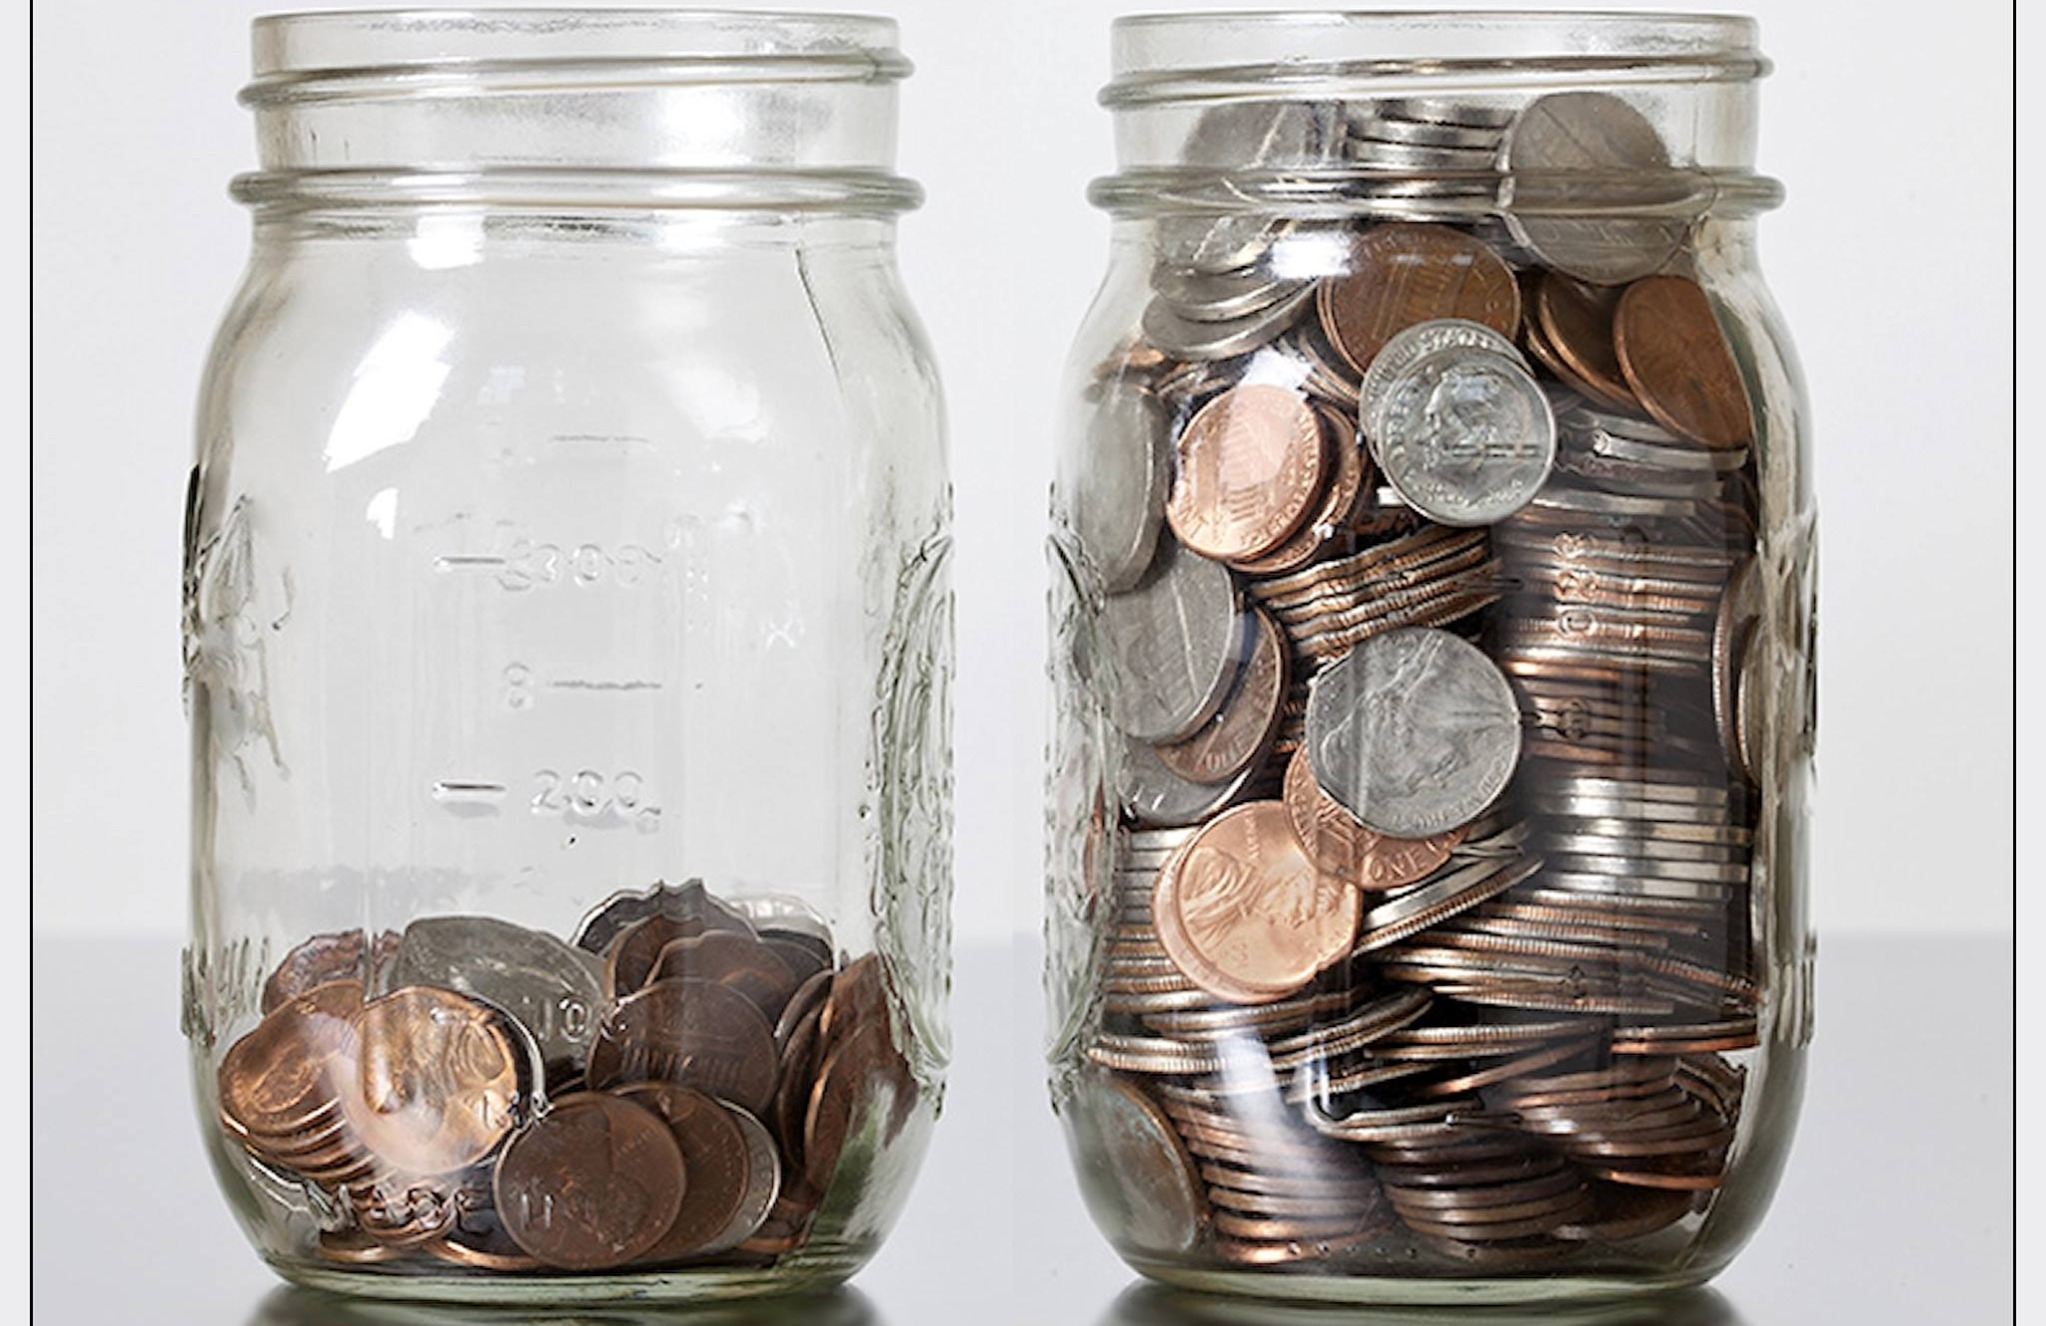 money jars swear jars habit control psychology